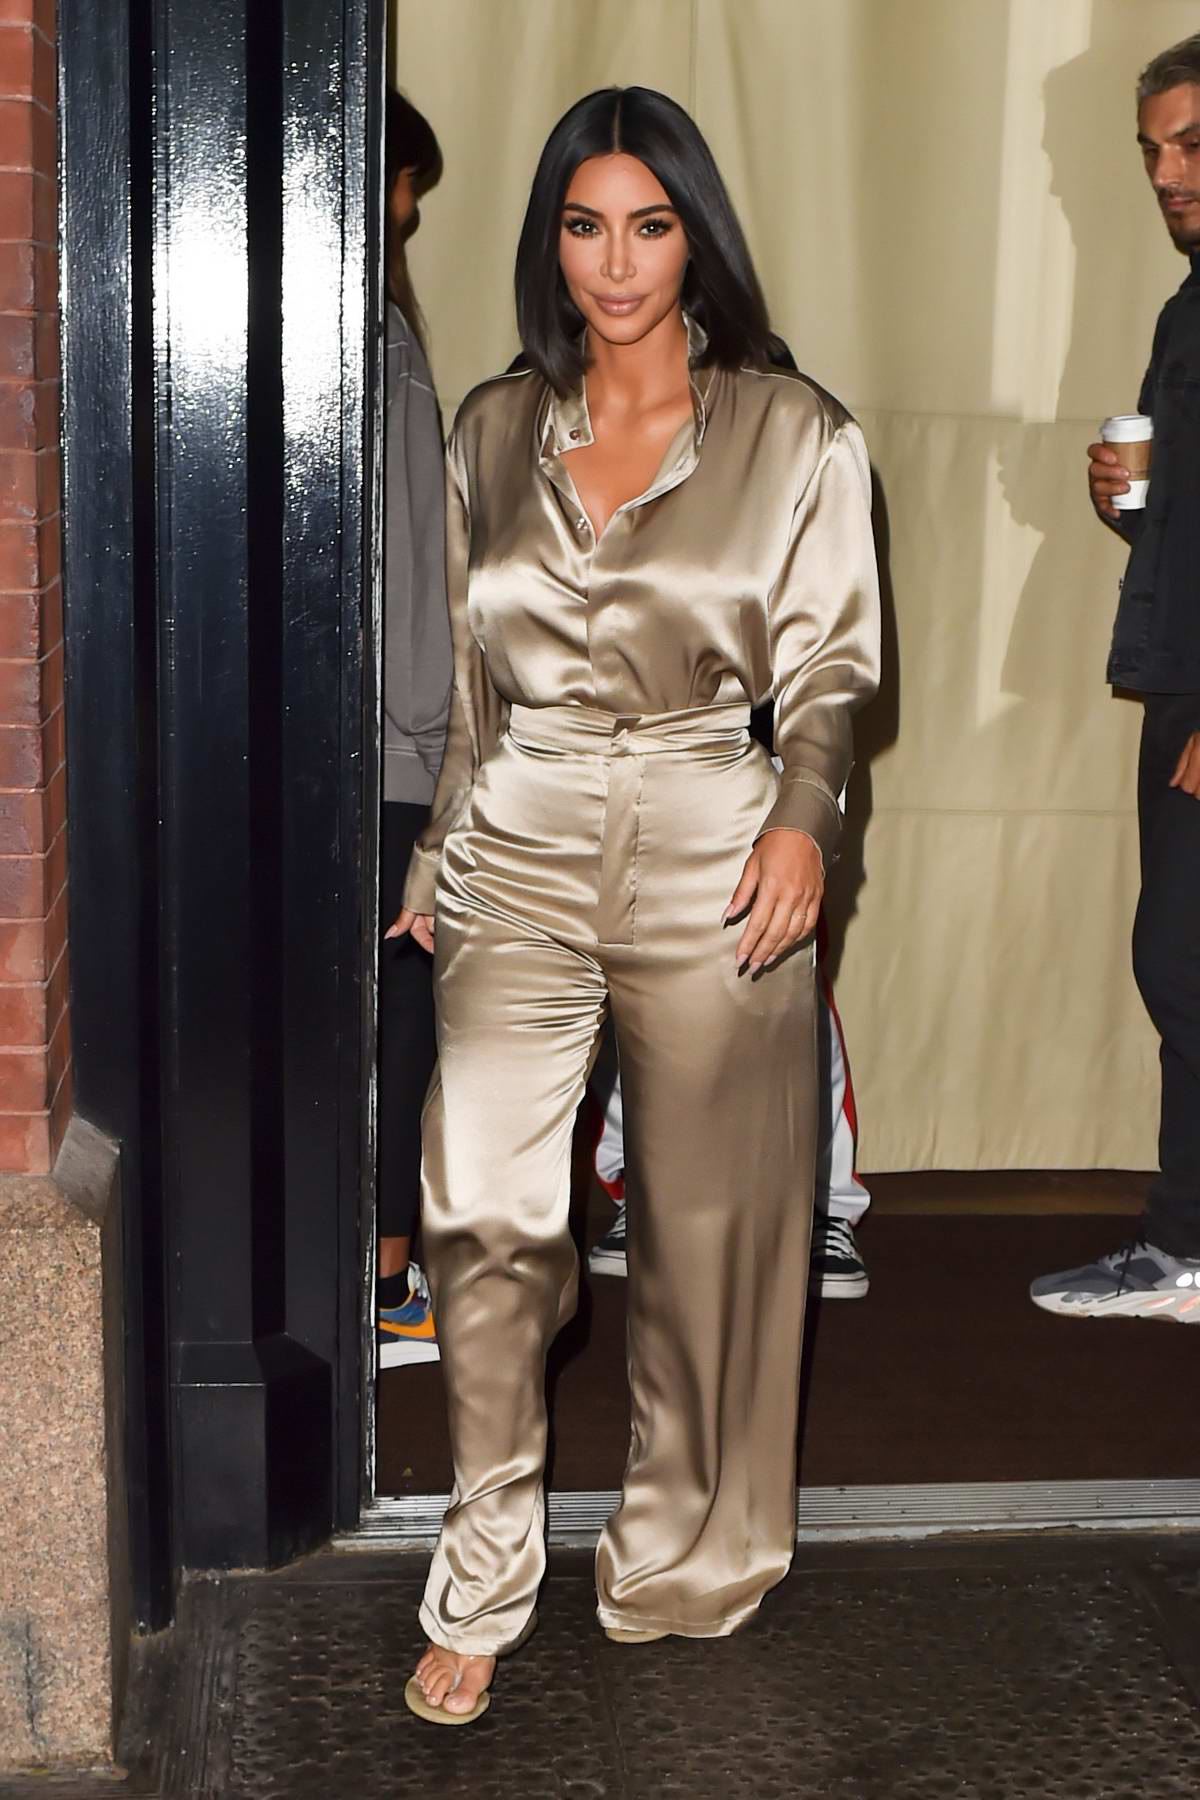 Kim Kardashian shines in a beige satin ensemble as she leaves The Mercer Hotel in New York City